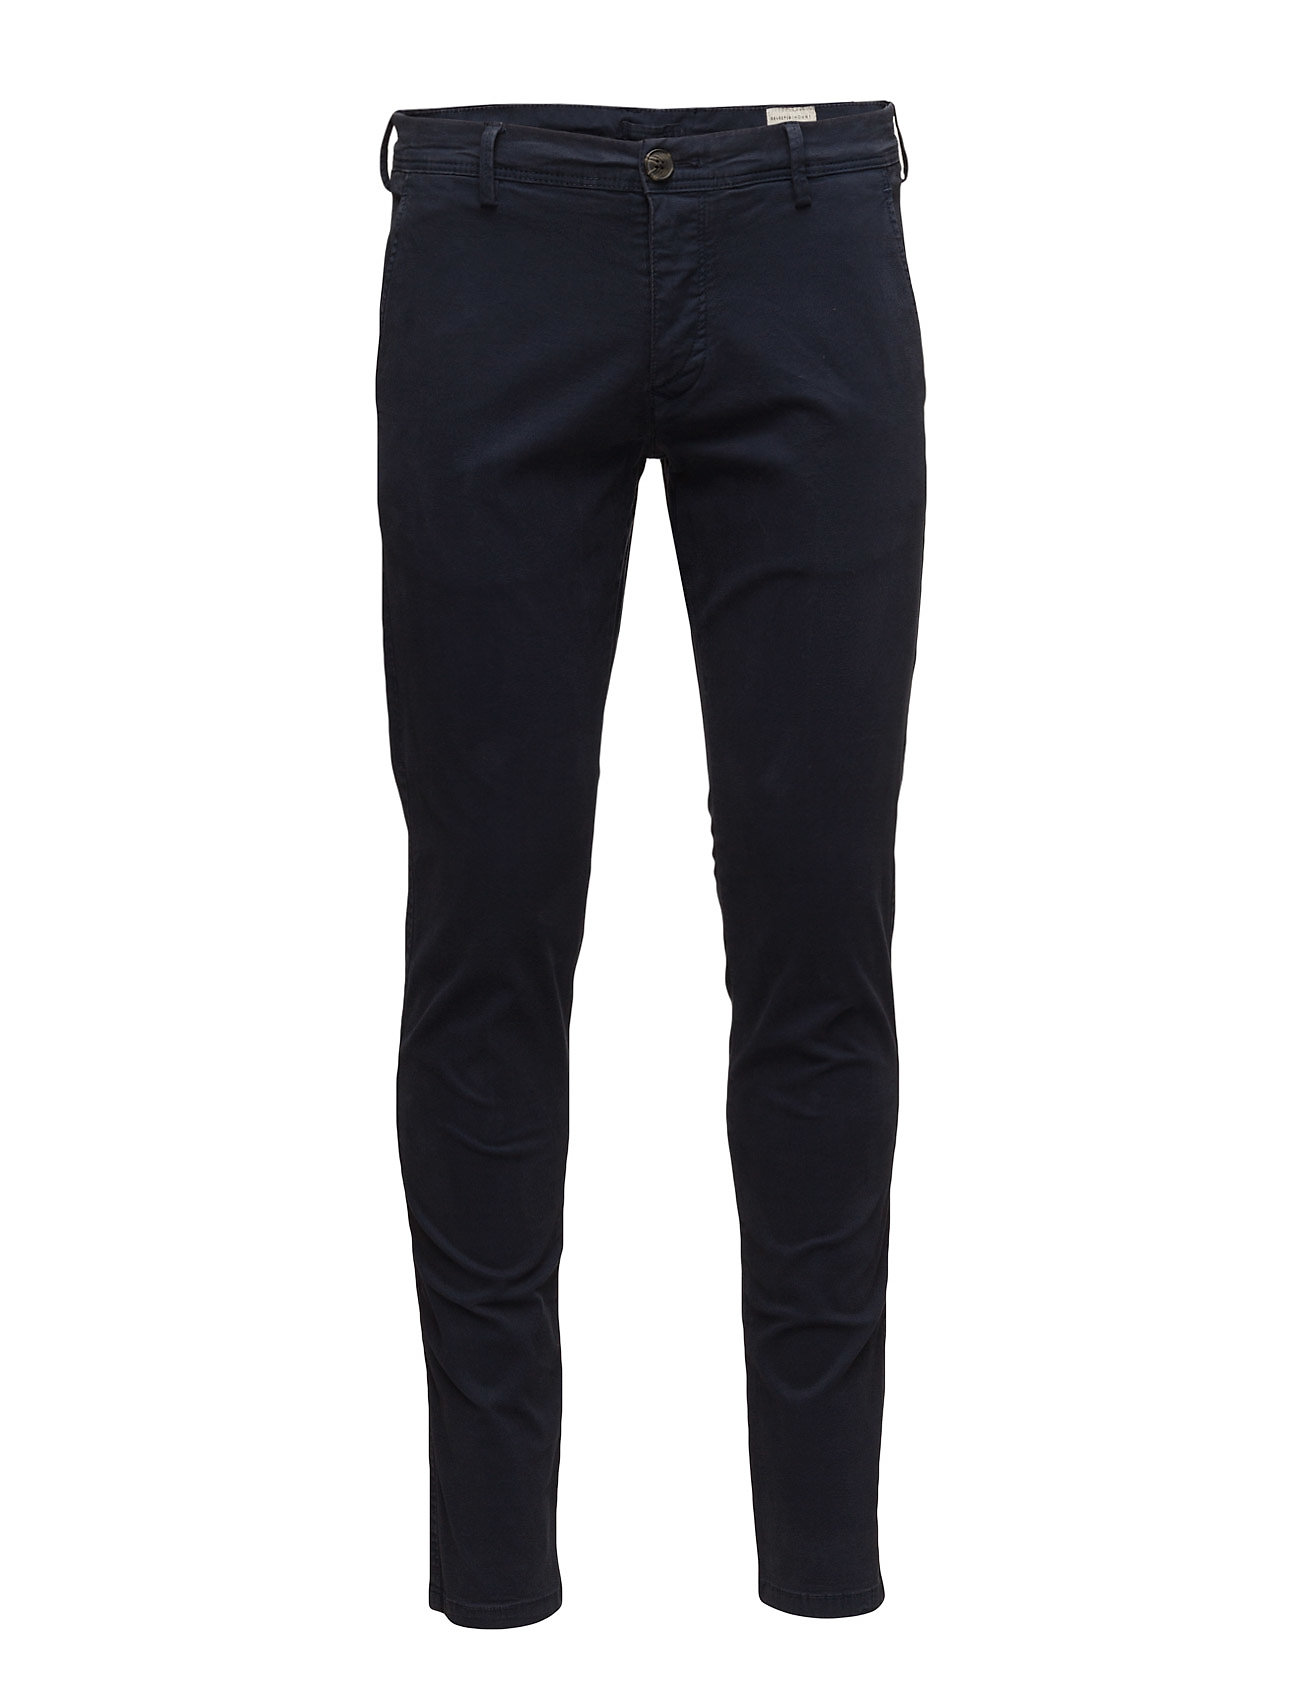 Selected Homme SLHSKINNY-LUCA NAVY PANTS W NOOS - NAVY BLAZER